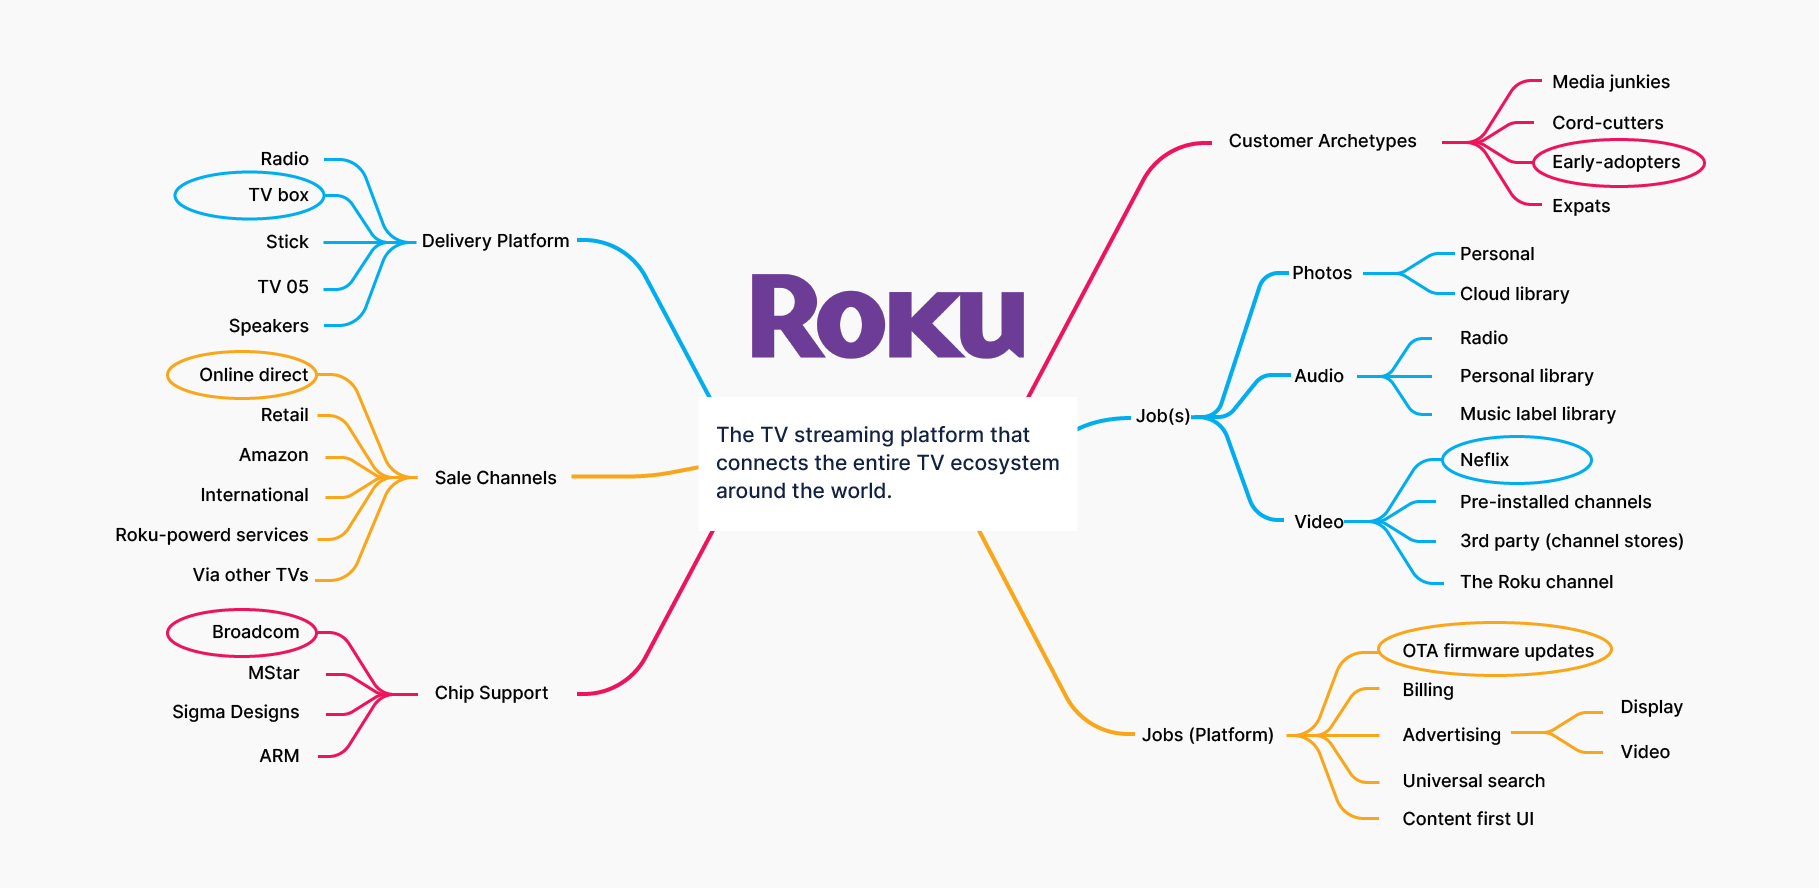 How to build an MVP - Roku examples by Enlab Software